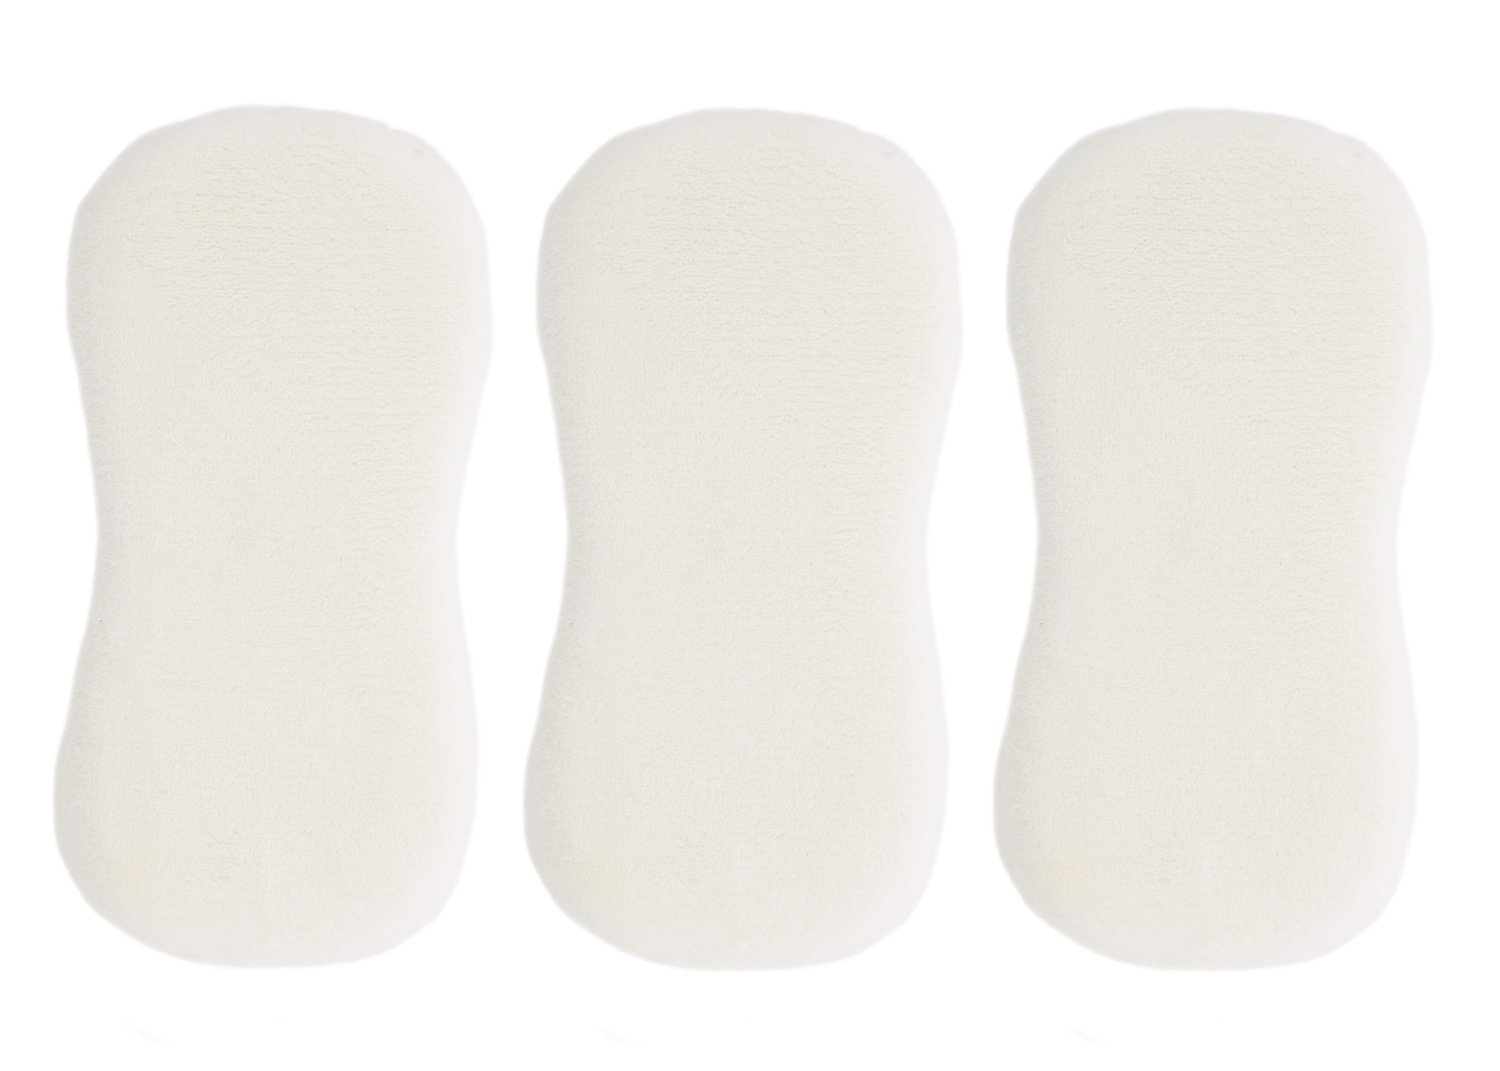 ABN Long Pile Microfiber Wash Sponge 3-Pack – White Cleaning Sponges for Car Washing and Vehicle Detailing